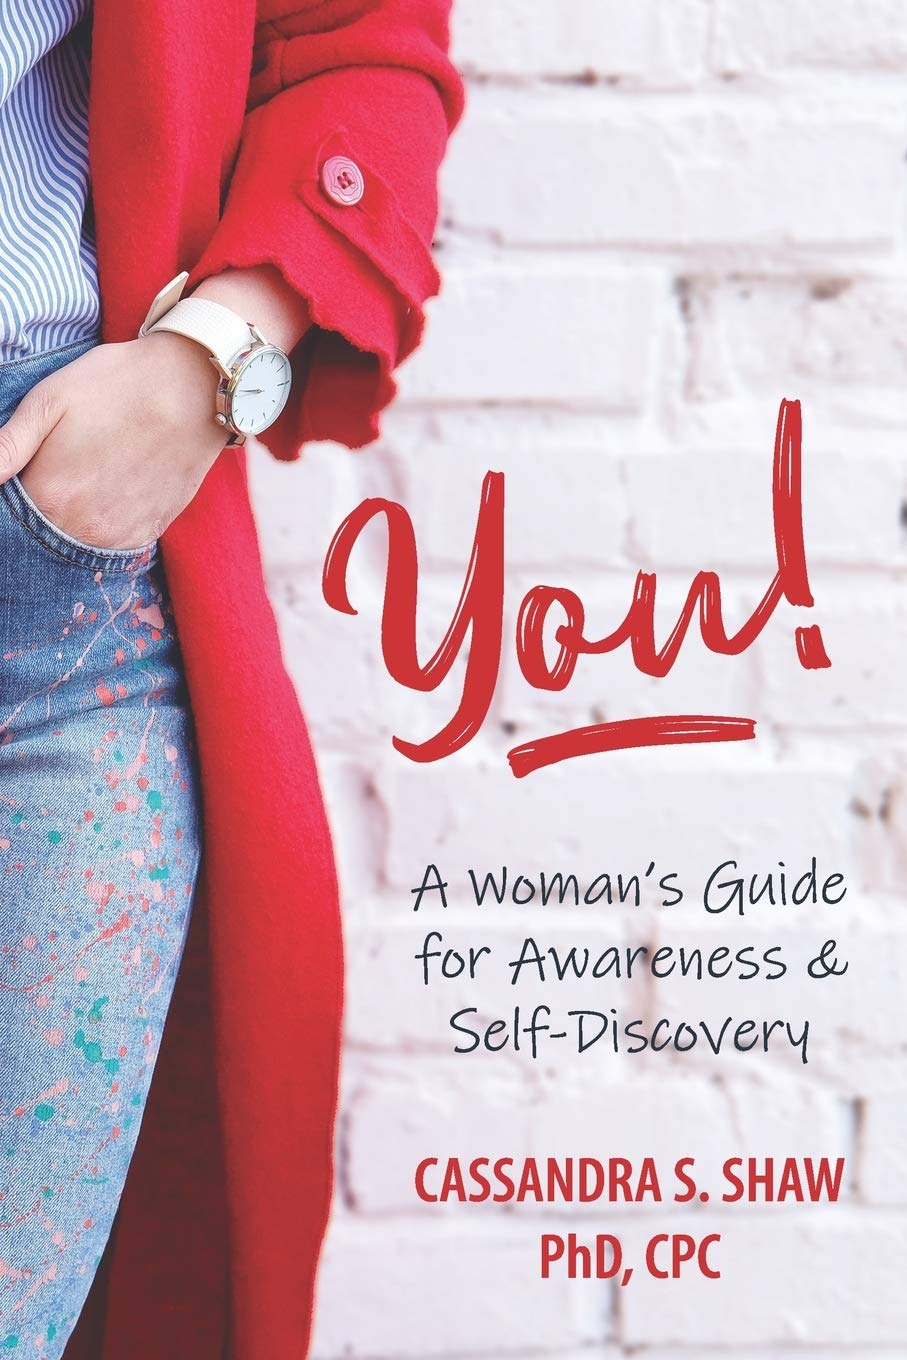 A Womans Guide to Self-Discovery (Get to know the real you)